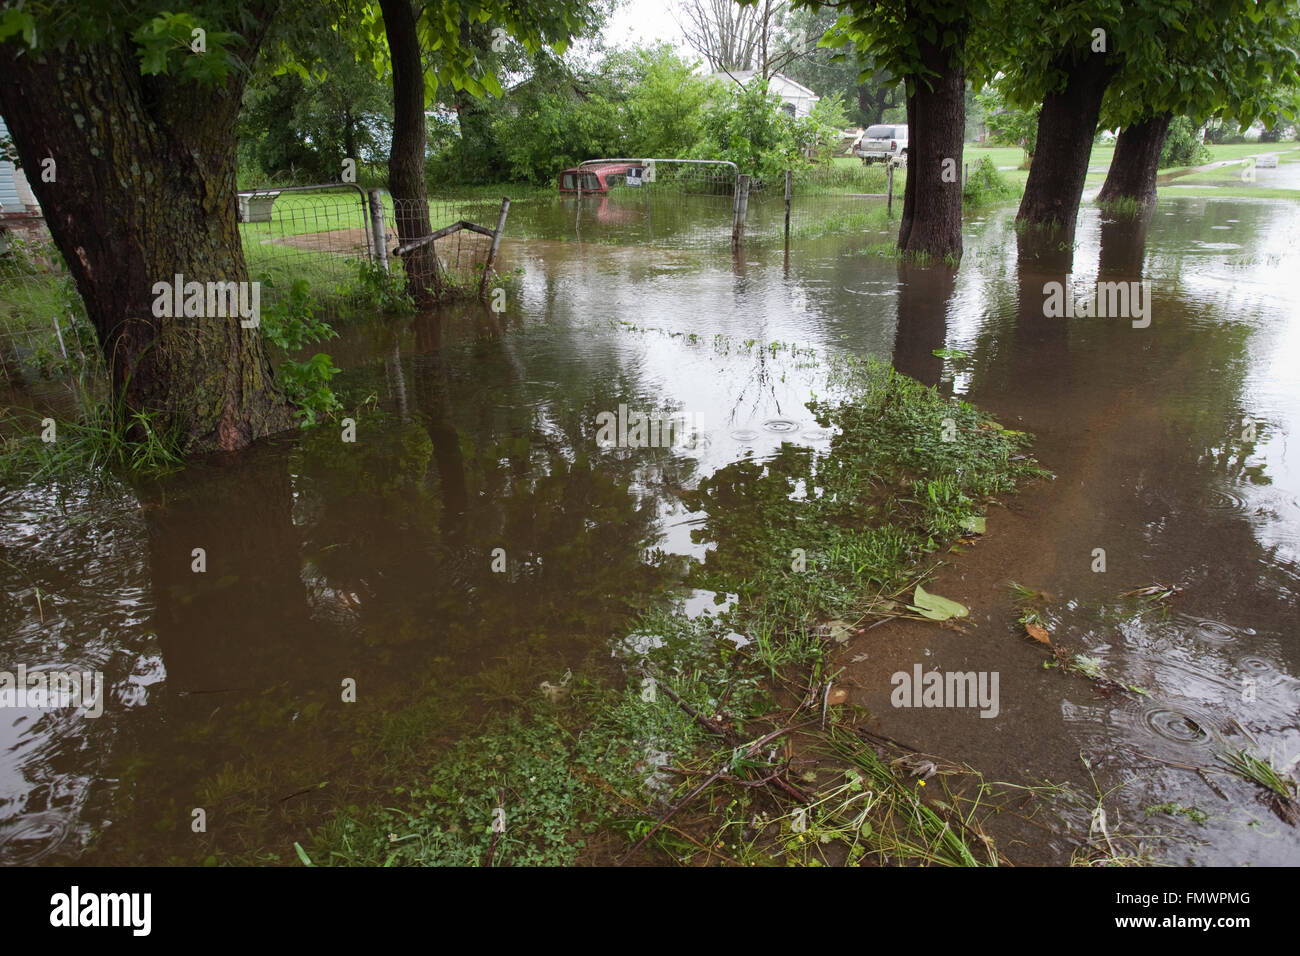 Heavy rains from Tropical storm Bill flooded the yard of houses outside the city of Tulsa, Oklahoma in June 2015. - Stock Image